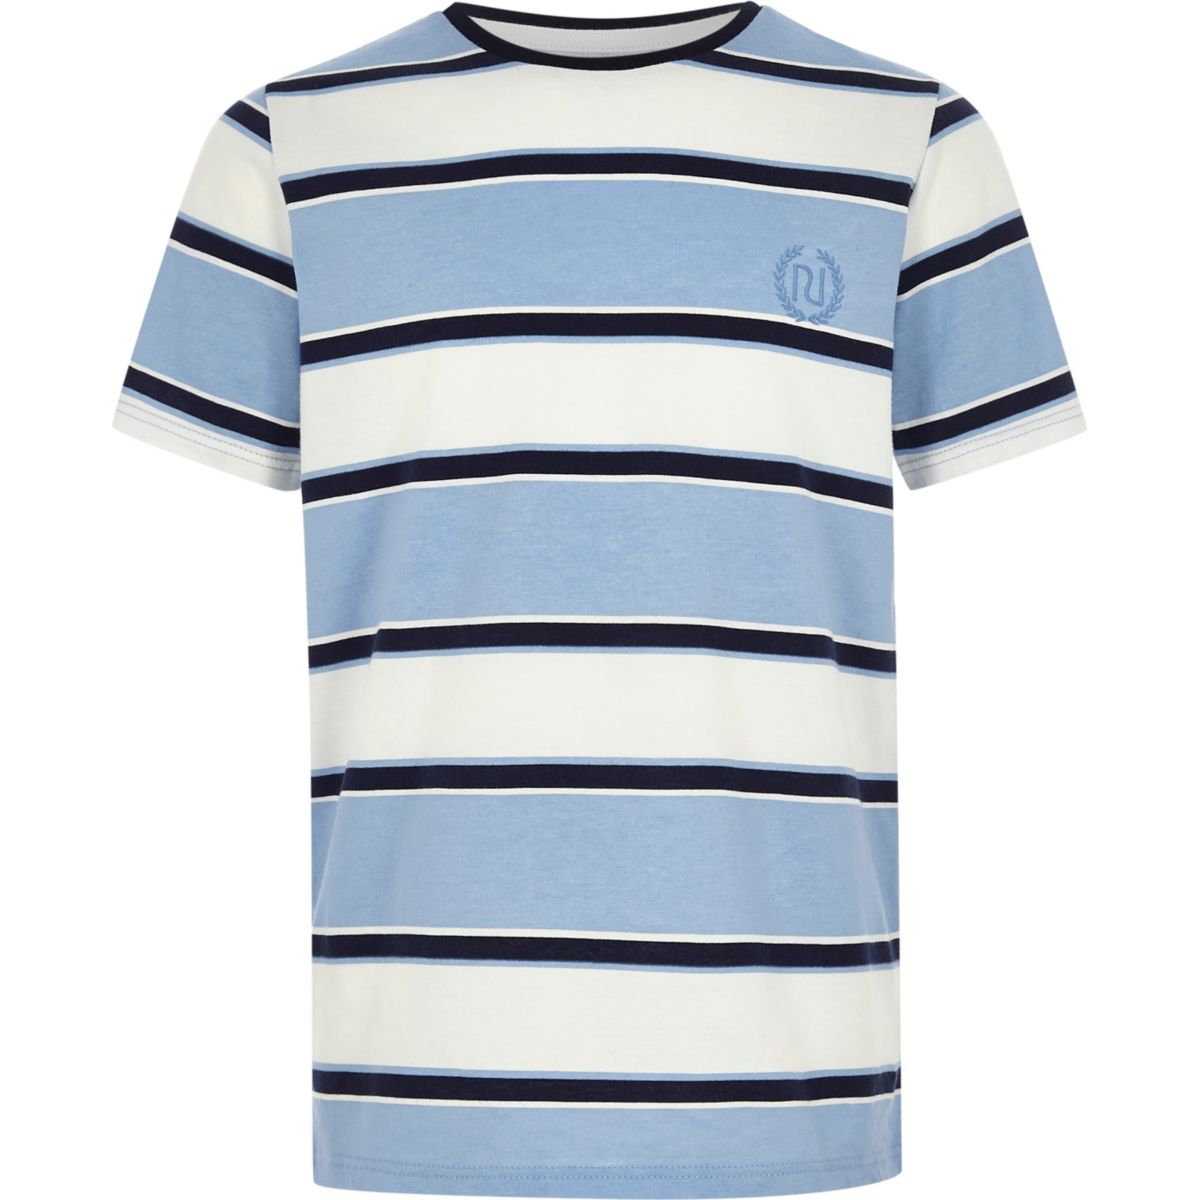 Boys blue stripe 'RI' embroidered T-shirt